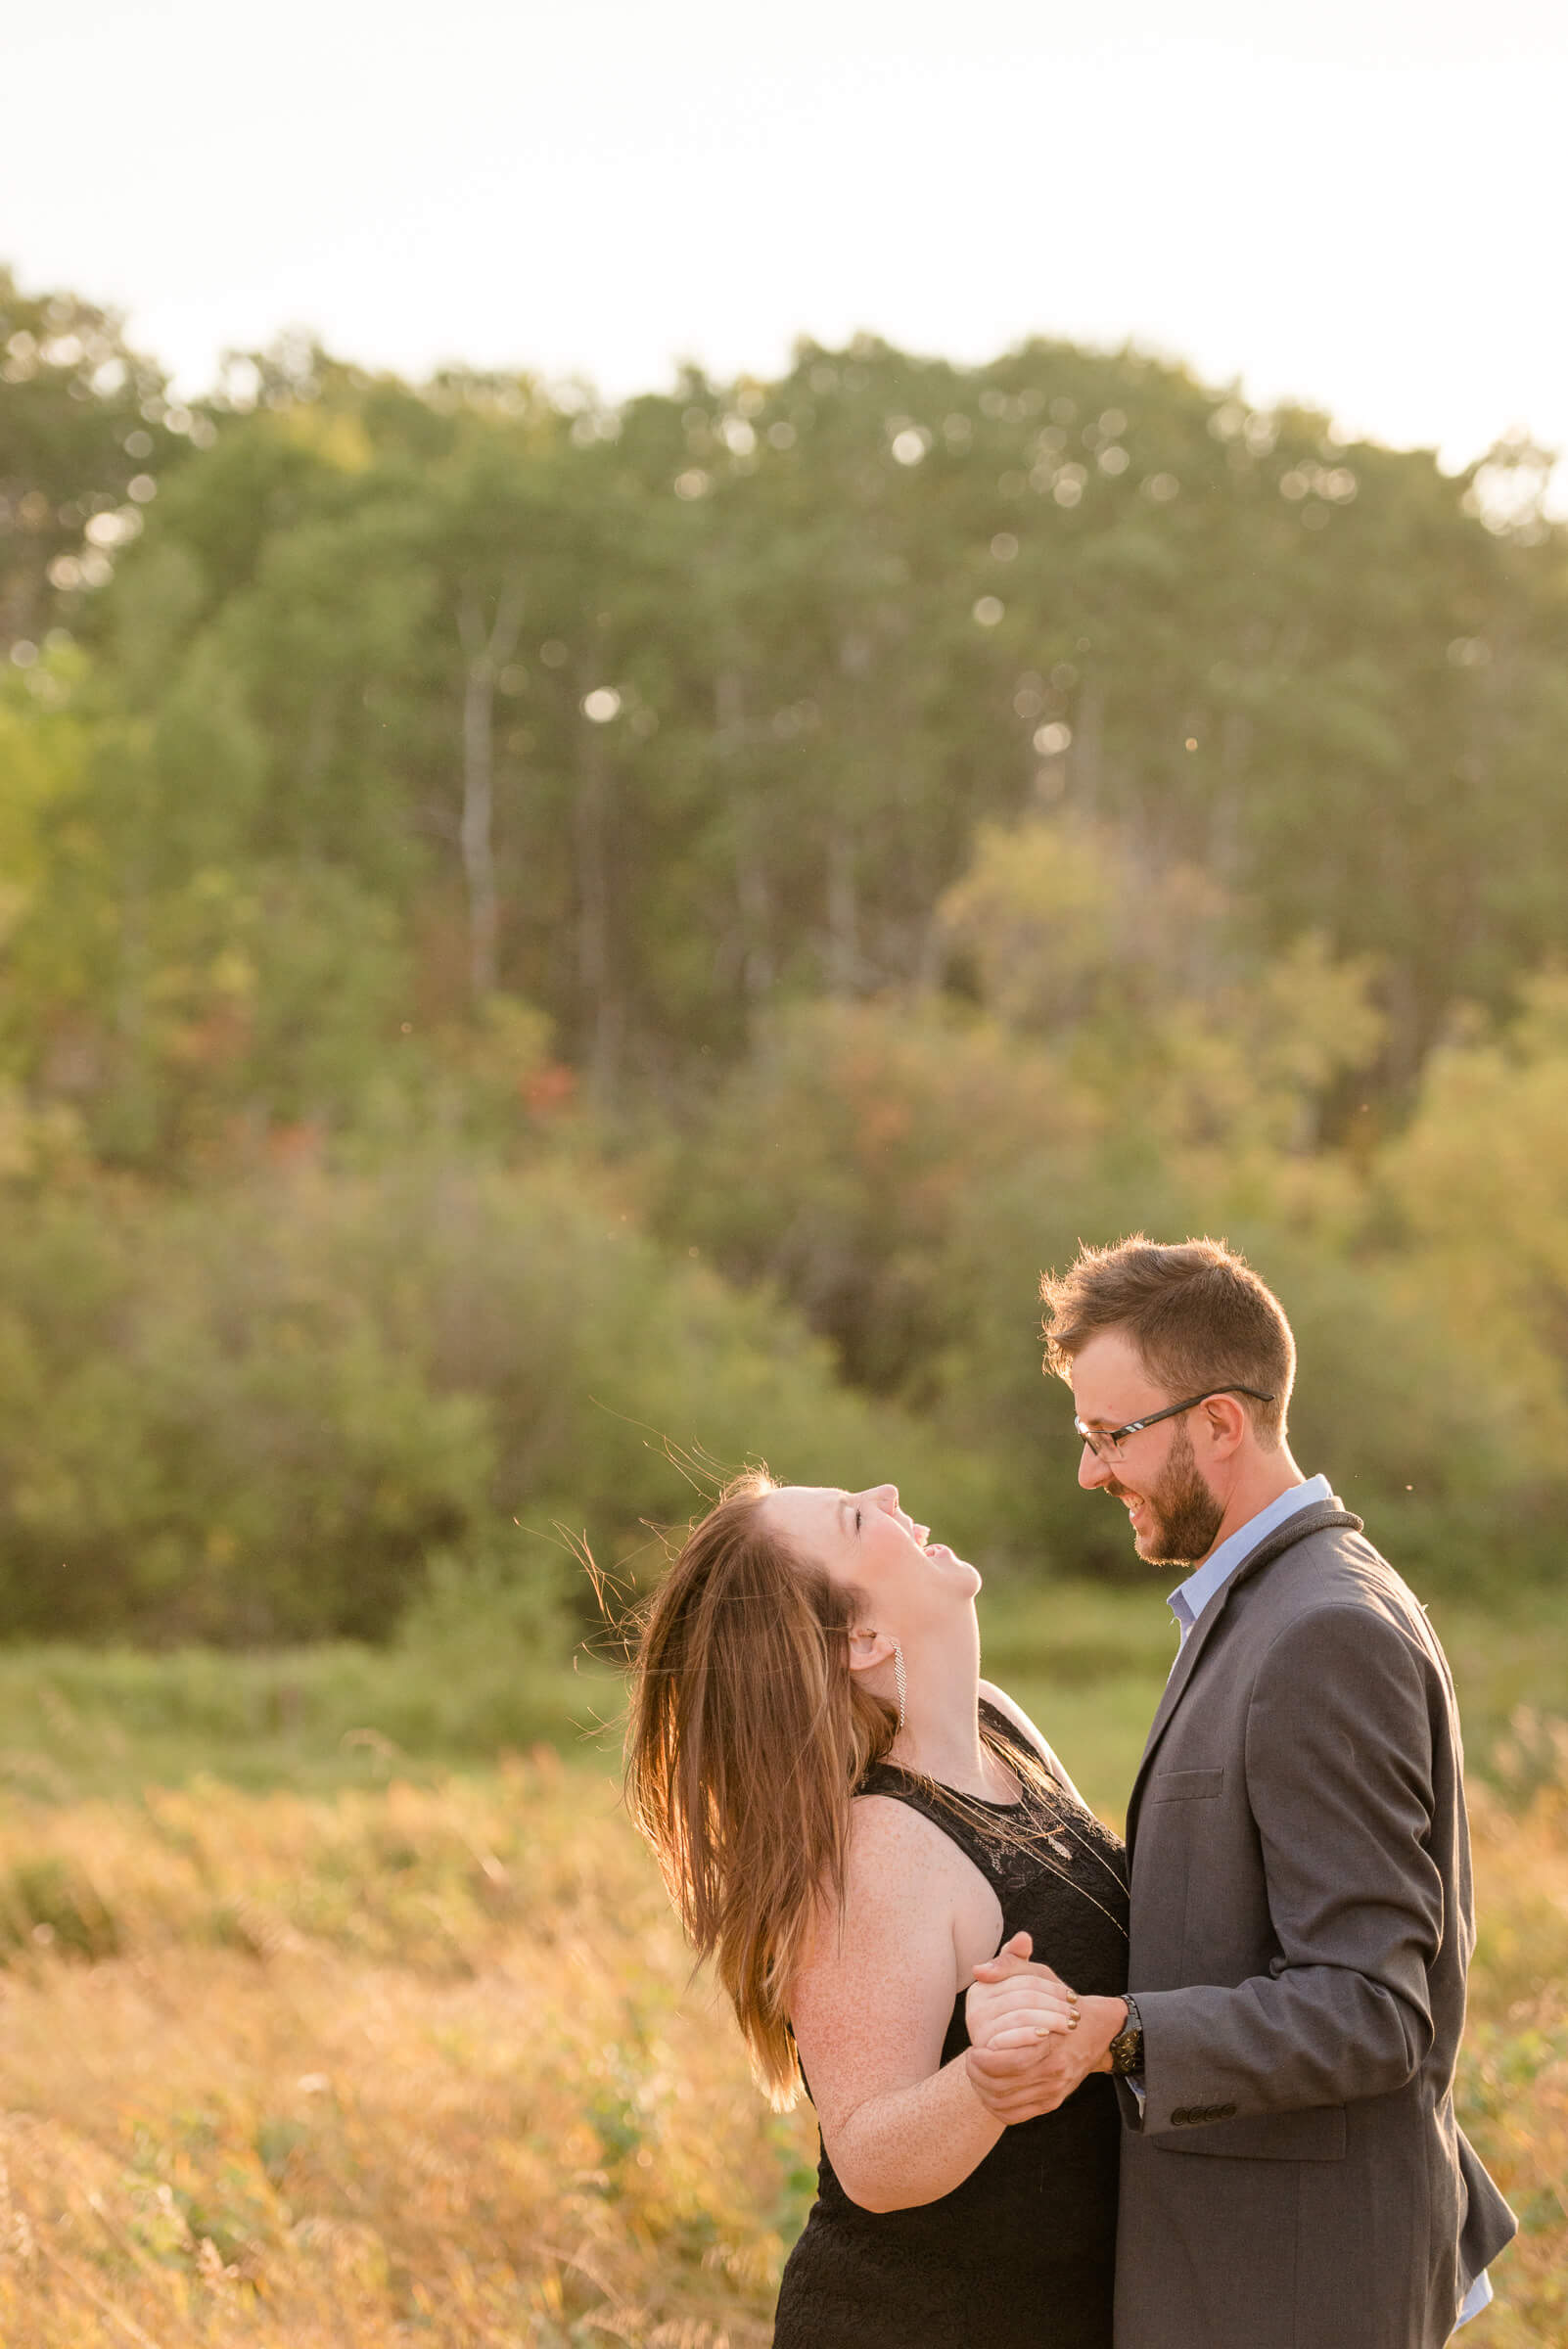 Allie & Nathan - Sunset Laughter - Acreage Engagement Session